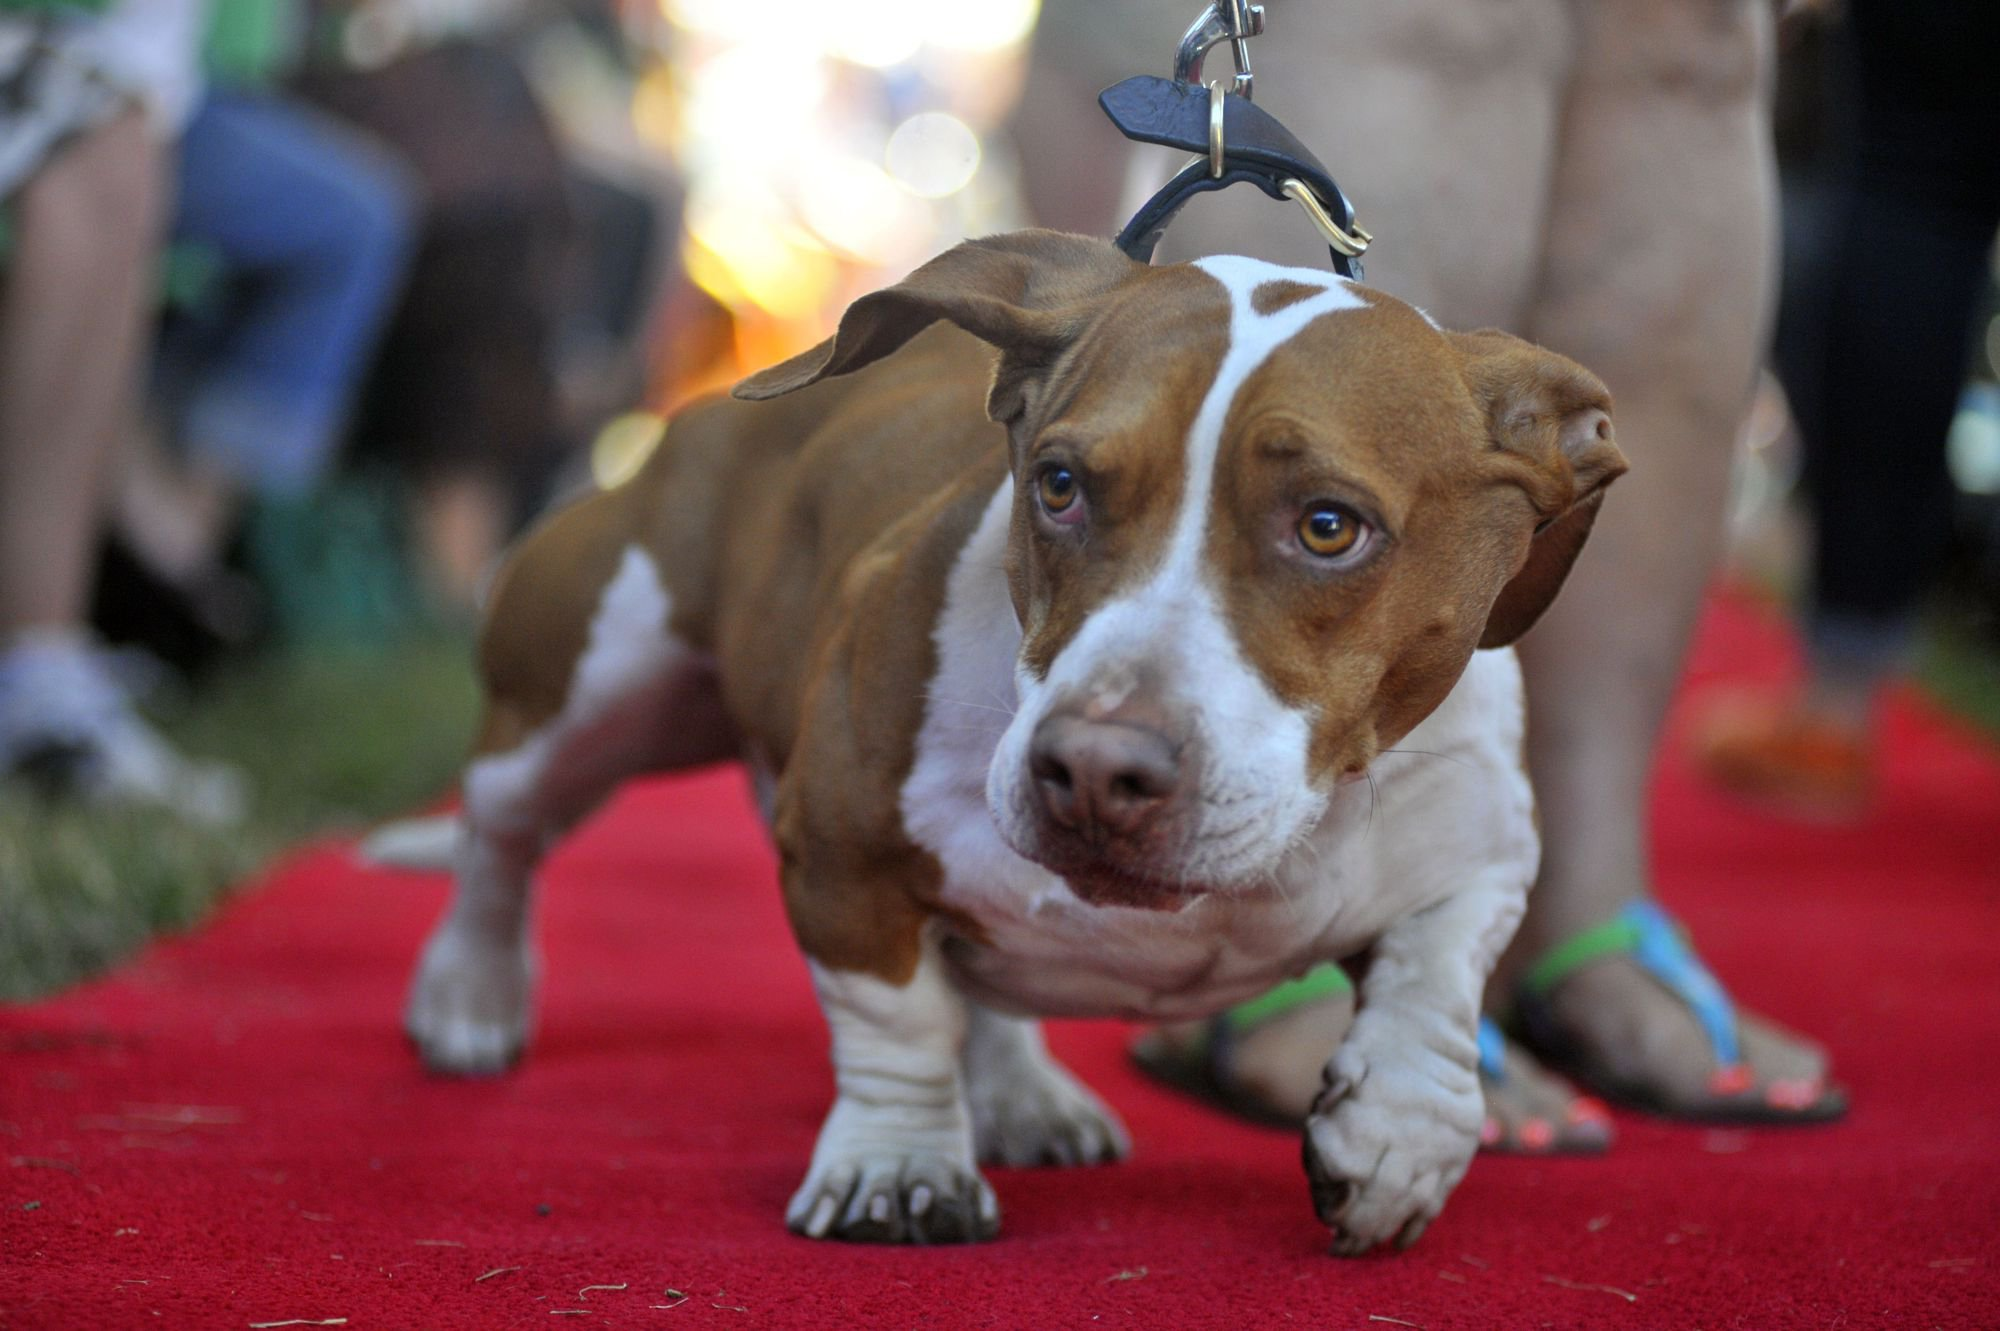 Tammie Barbee walks her dog Walle, a Beagle-Bassett, down the red carpet at the start of this year's World's Ugliest Dog competition in Petaluma, California, on Friday, June 21, 2013. AFP Photo / Josh Edelson